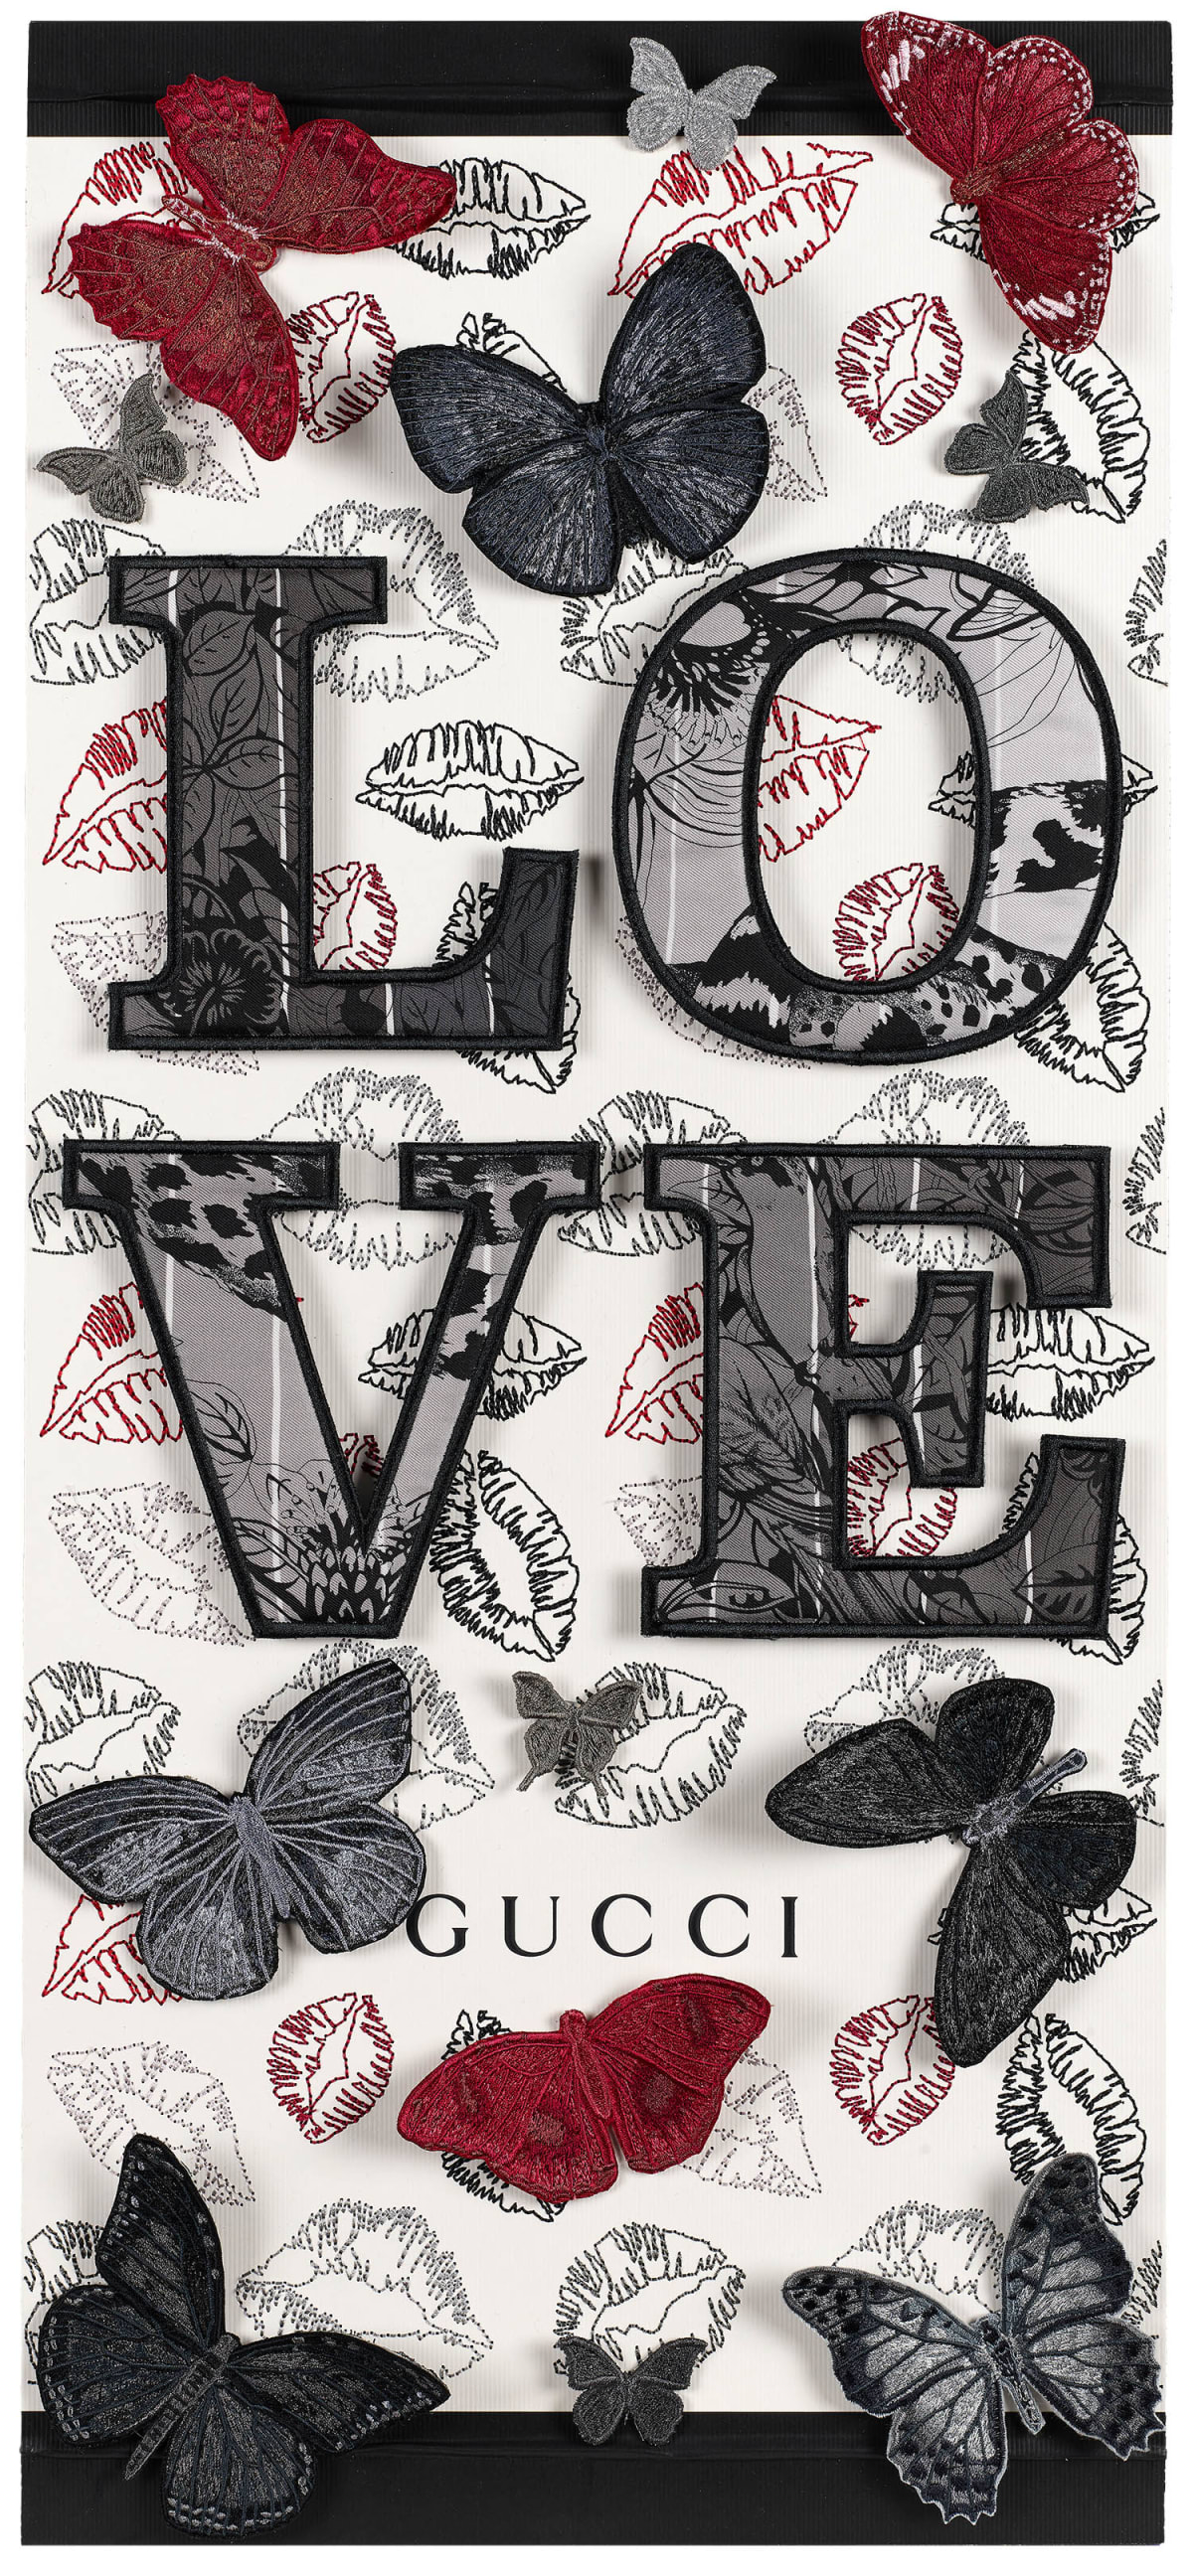 Stephen Wilson, Butterfly Kisses (Charcoal), 2020